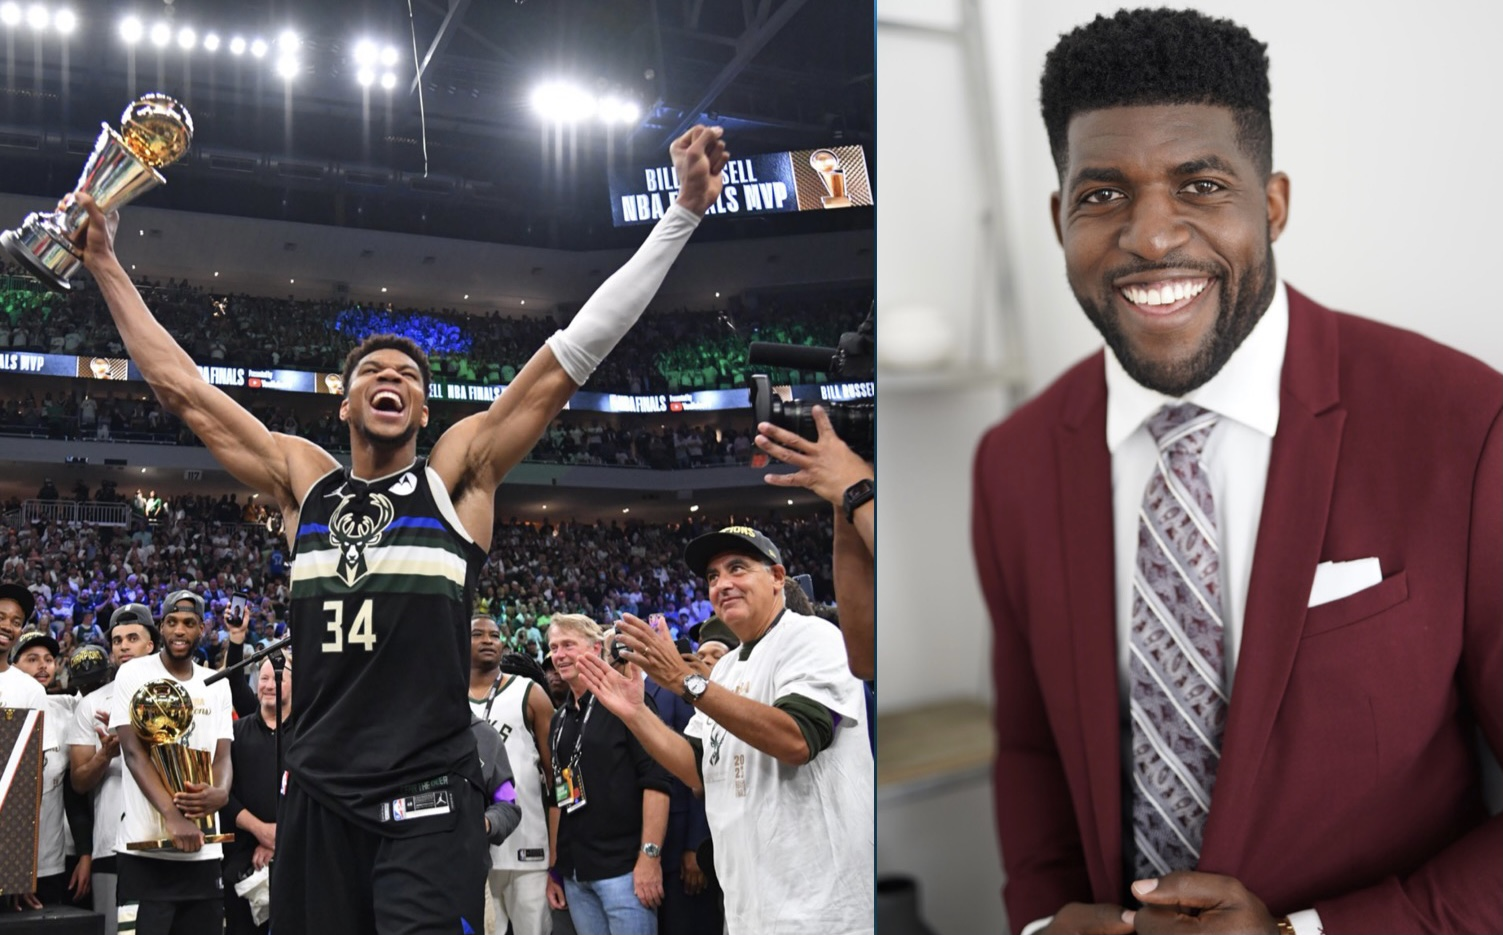 FS1 Emmanuel Acho Says Giannis Antetokounmpo Can't Be The Face Of The NBA Because His Nigerian and Isn't Relatable